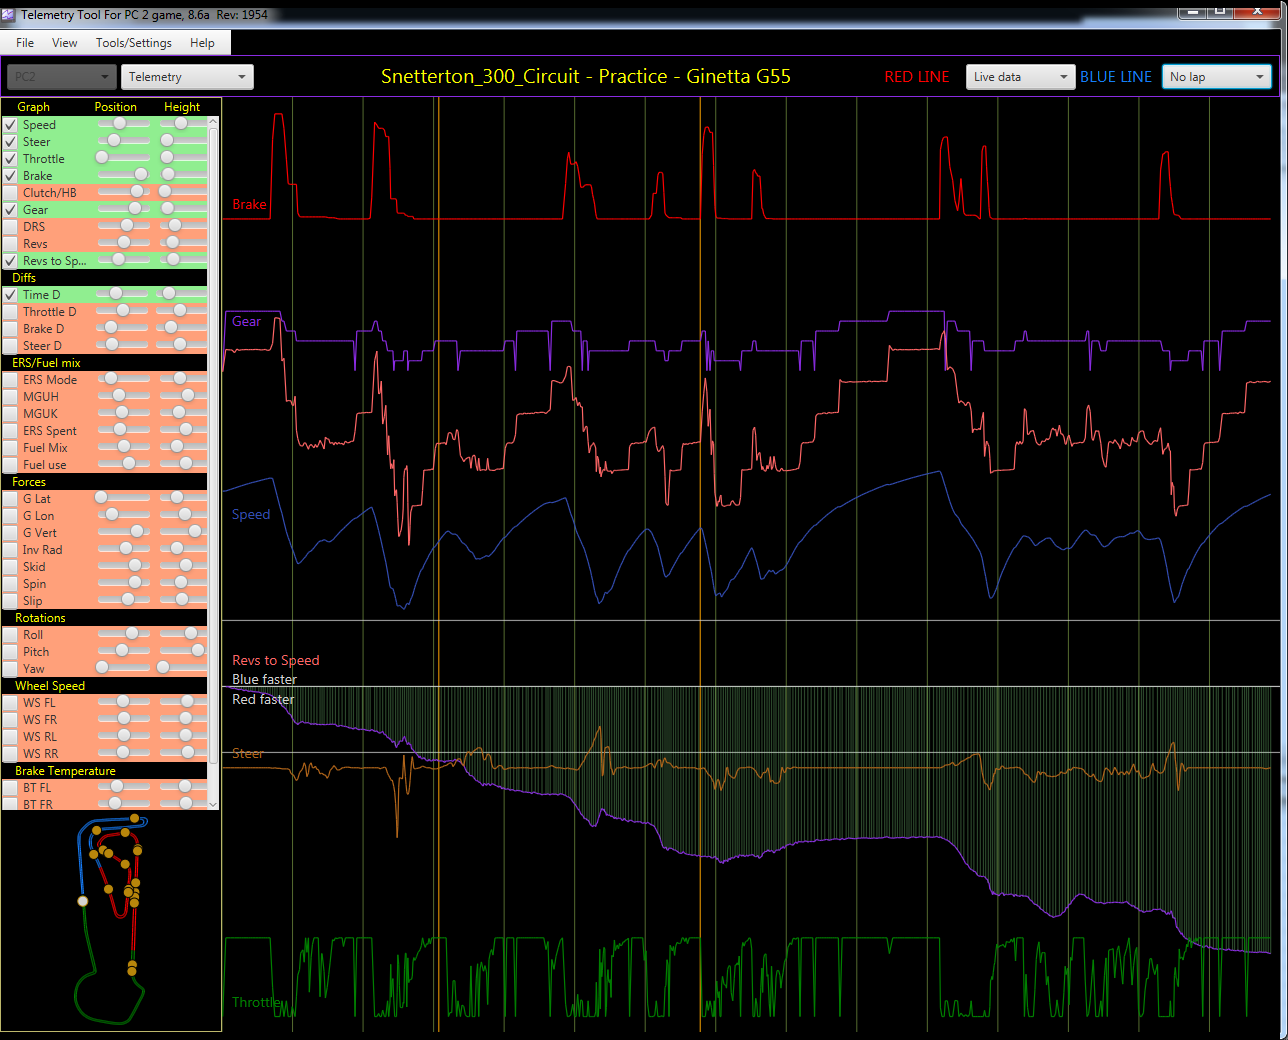 V8_PC2_Telmetry_colored_datalines_no_blue.png